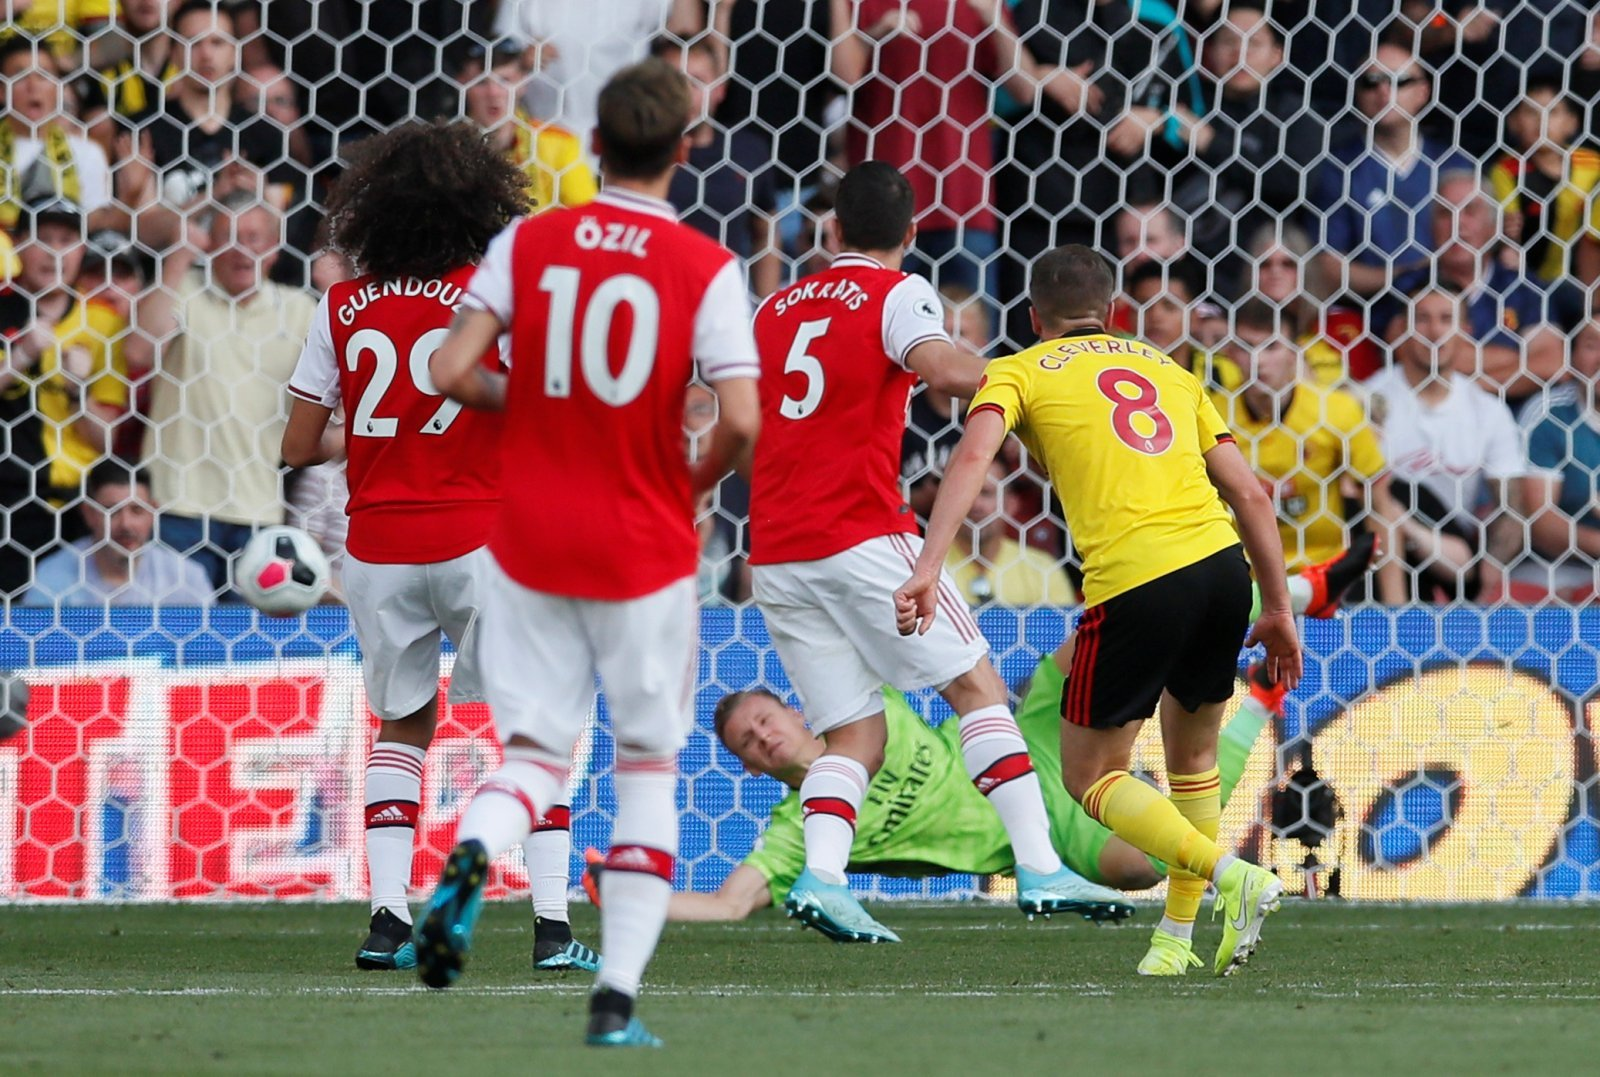 Watford: Fans left in no doubt that Tom Cleverley was the best player in yesterday's match